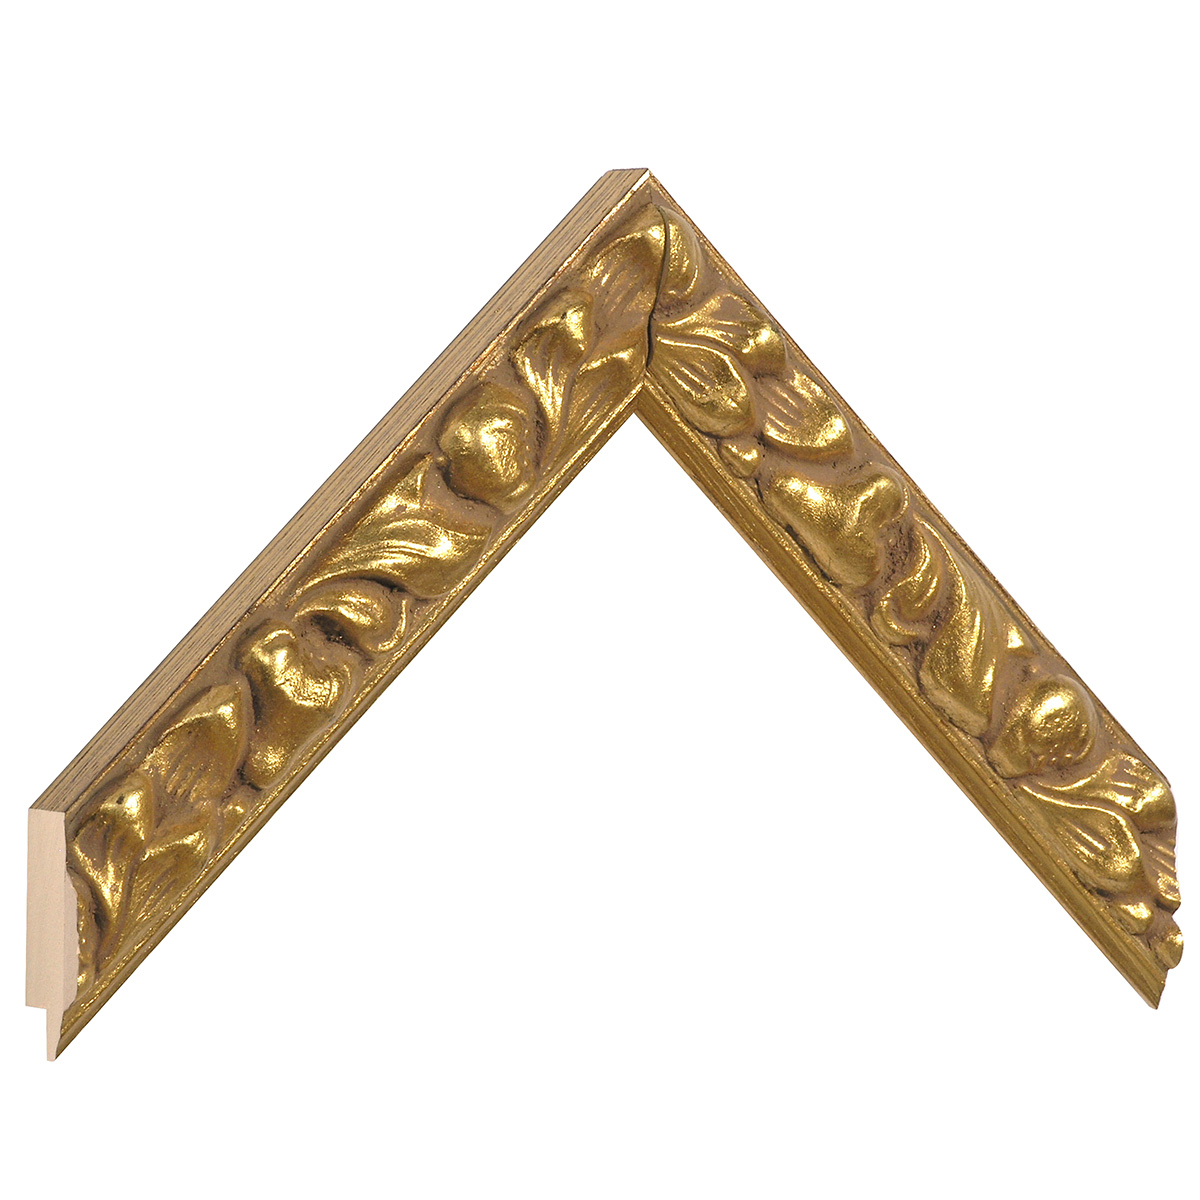 Moulding ayous 29mm - gold, embossed floral decorations